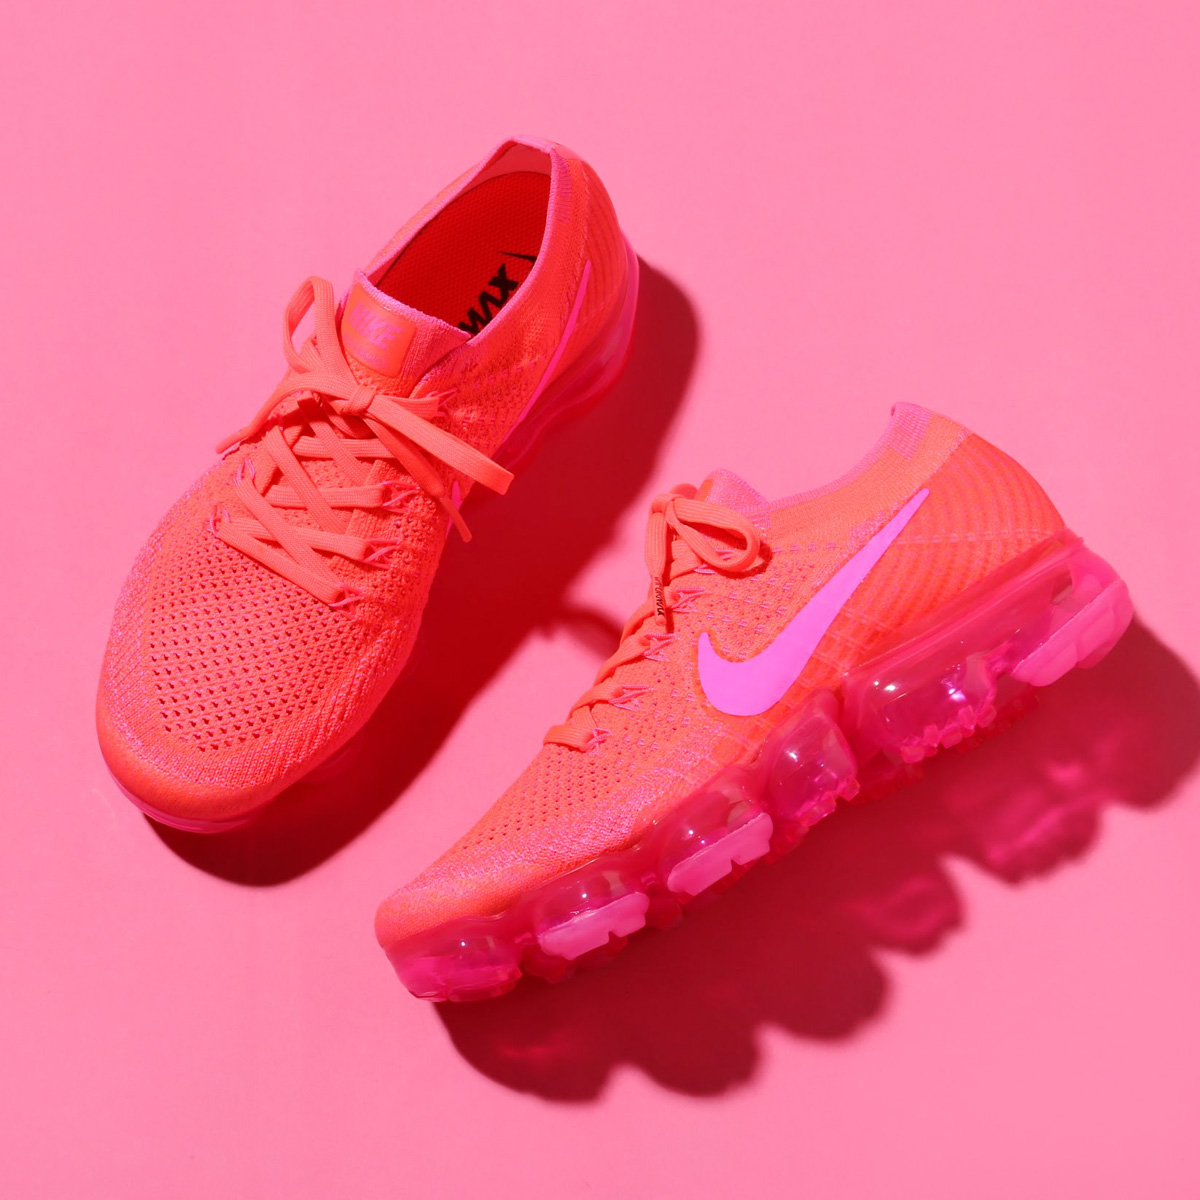 dac482f0b2 【楽天市場】NIKE WMNS AIR VAPORMAX FLYKNIT(ナイキ ウィメンズ エア ベイパーマックス フライニット)(HYPER  PUNCH/PINK BLAST-HOT PUNCH-BLACK)18SP-S:atmos pink